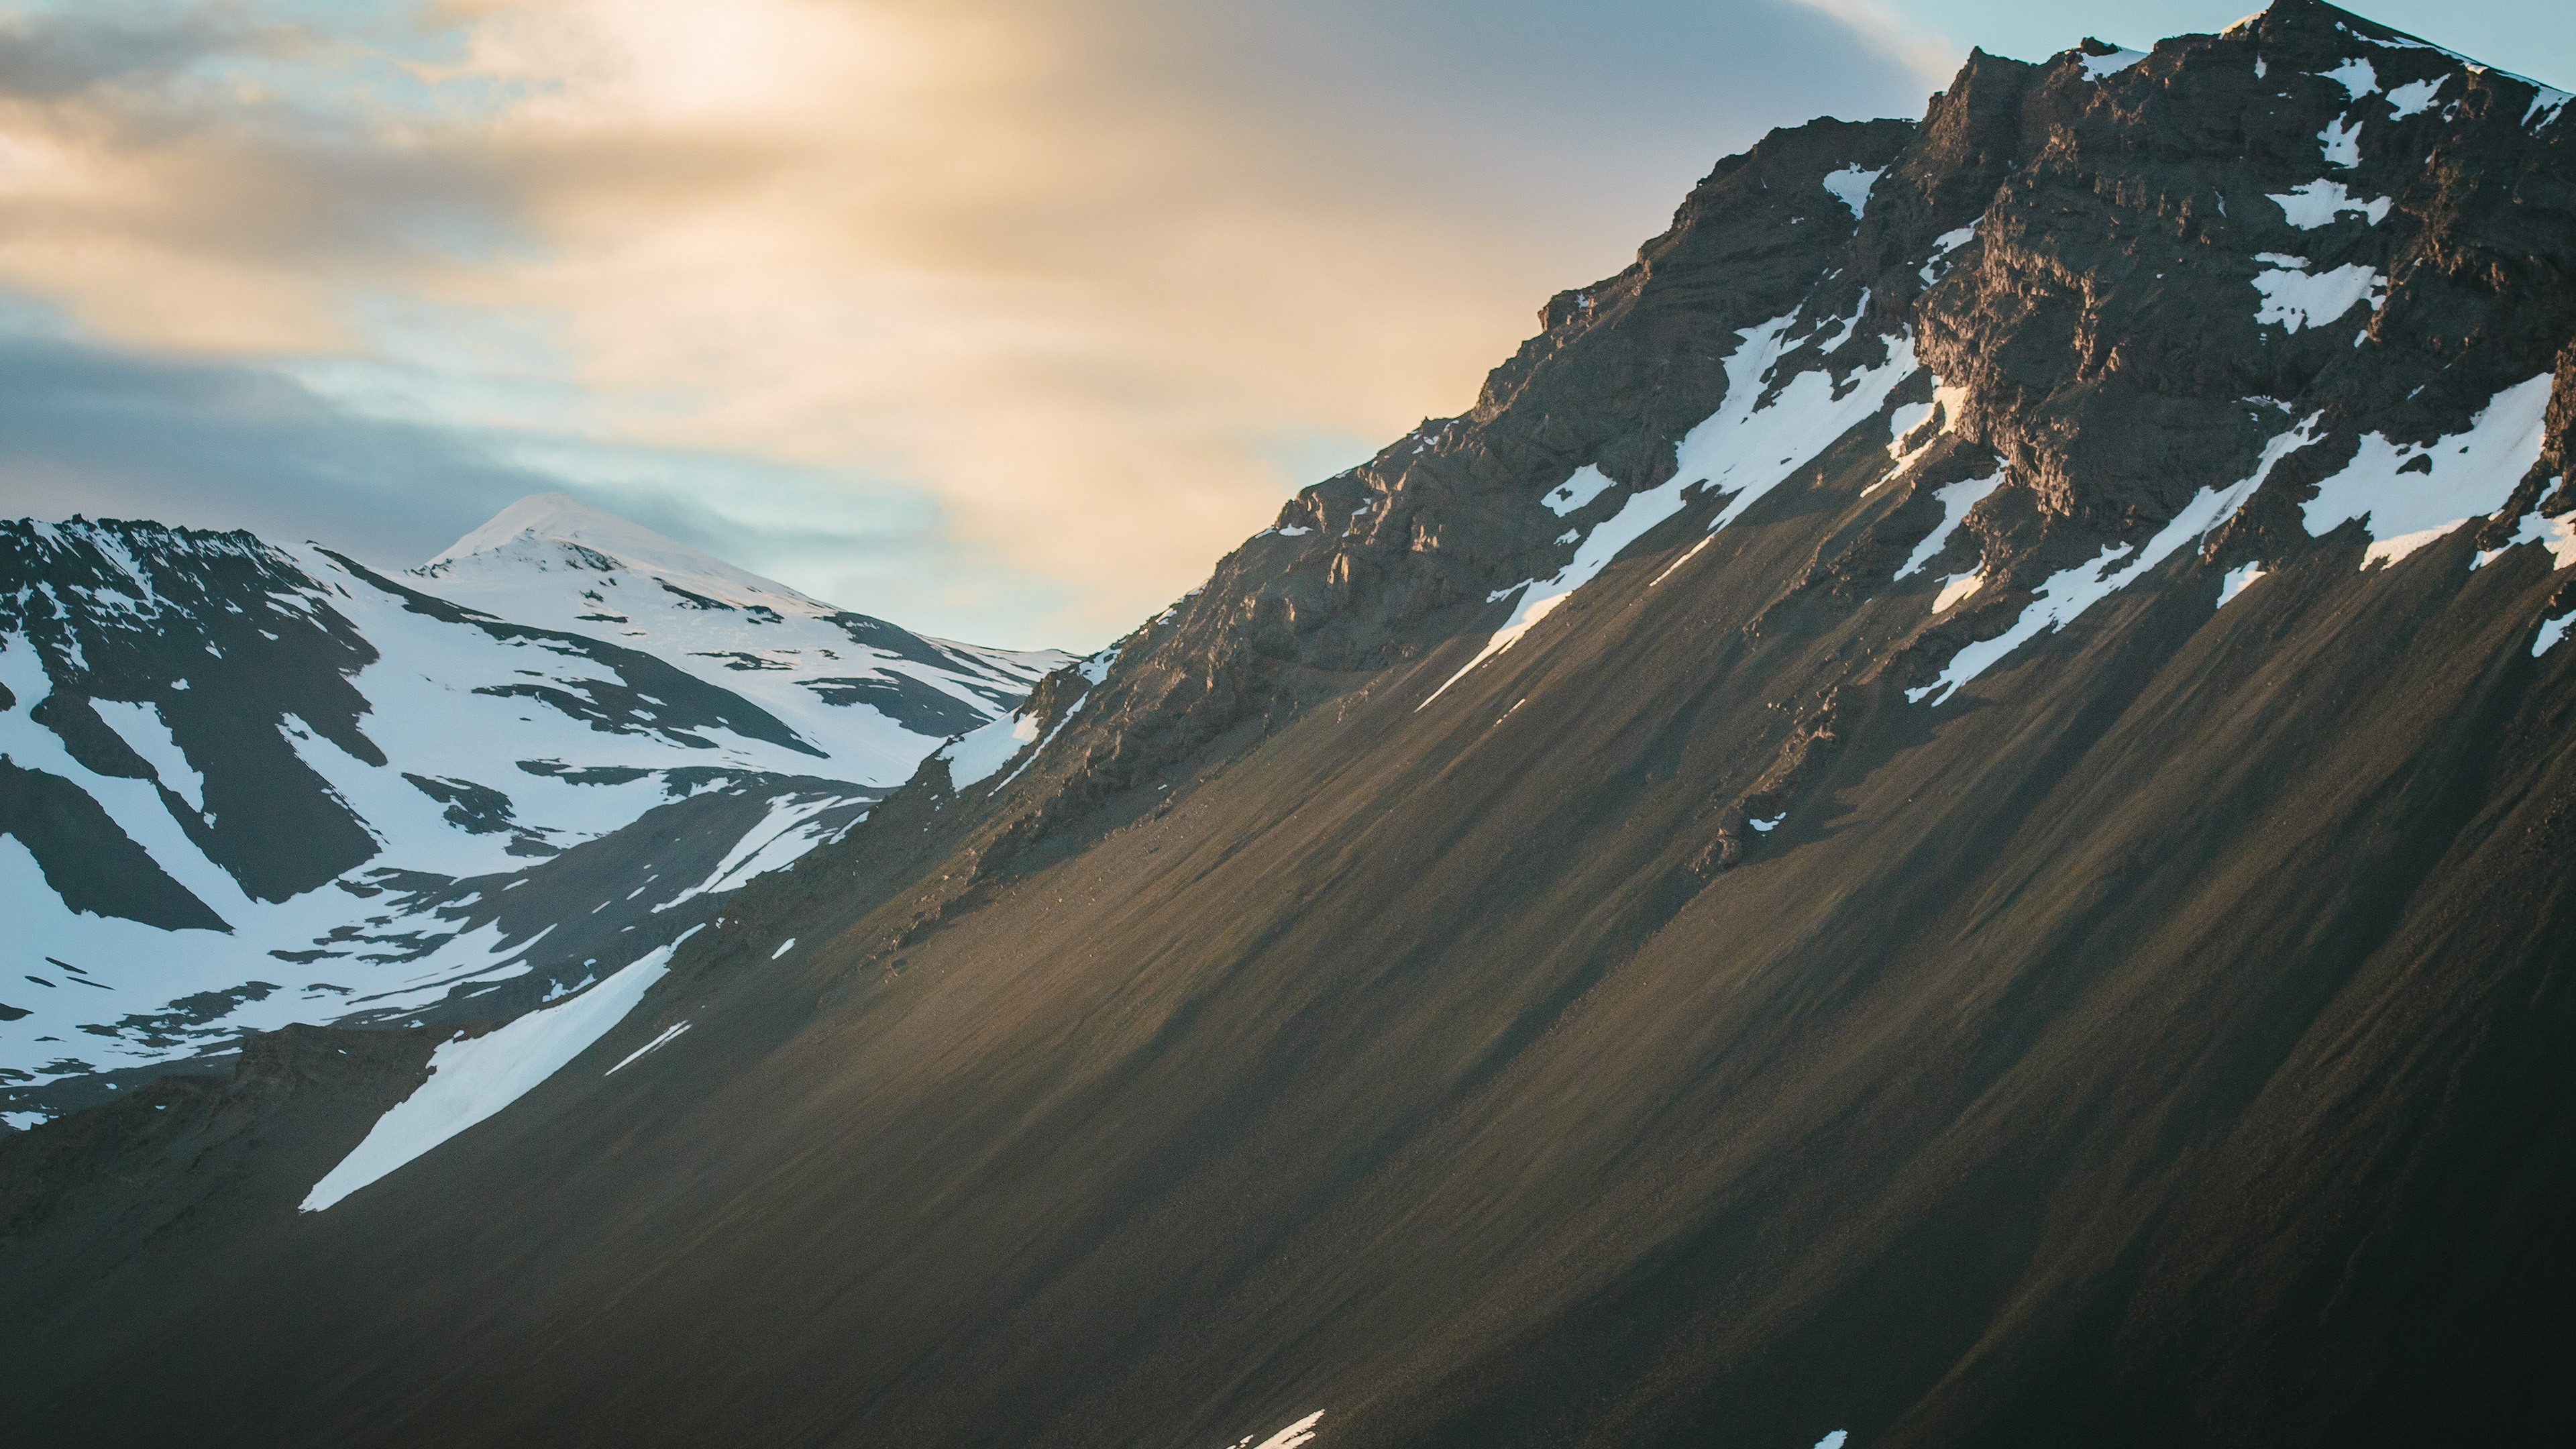 iceland 4k 1540142889 - Iceland 4k - nature wallpapers, mountains wallpapers, iceland wallpapers, hd-wallpapers, behance wallpapers, 4k-wallpapers